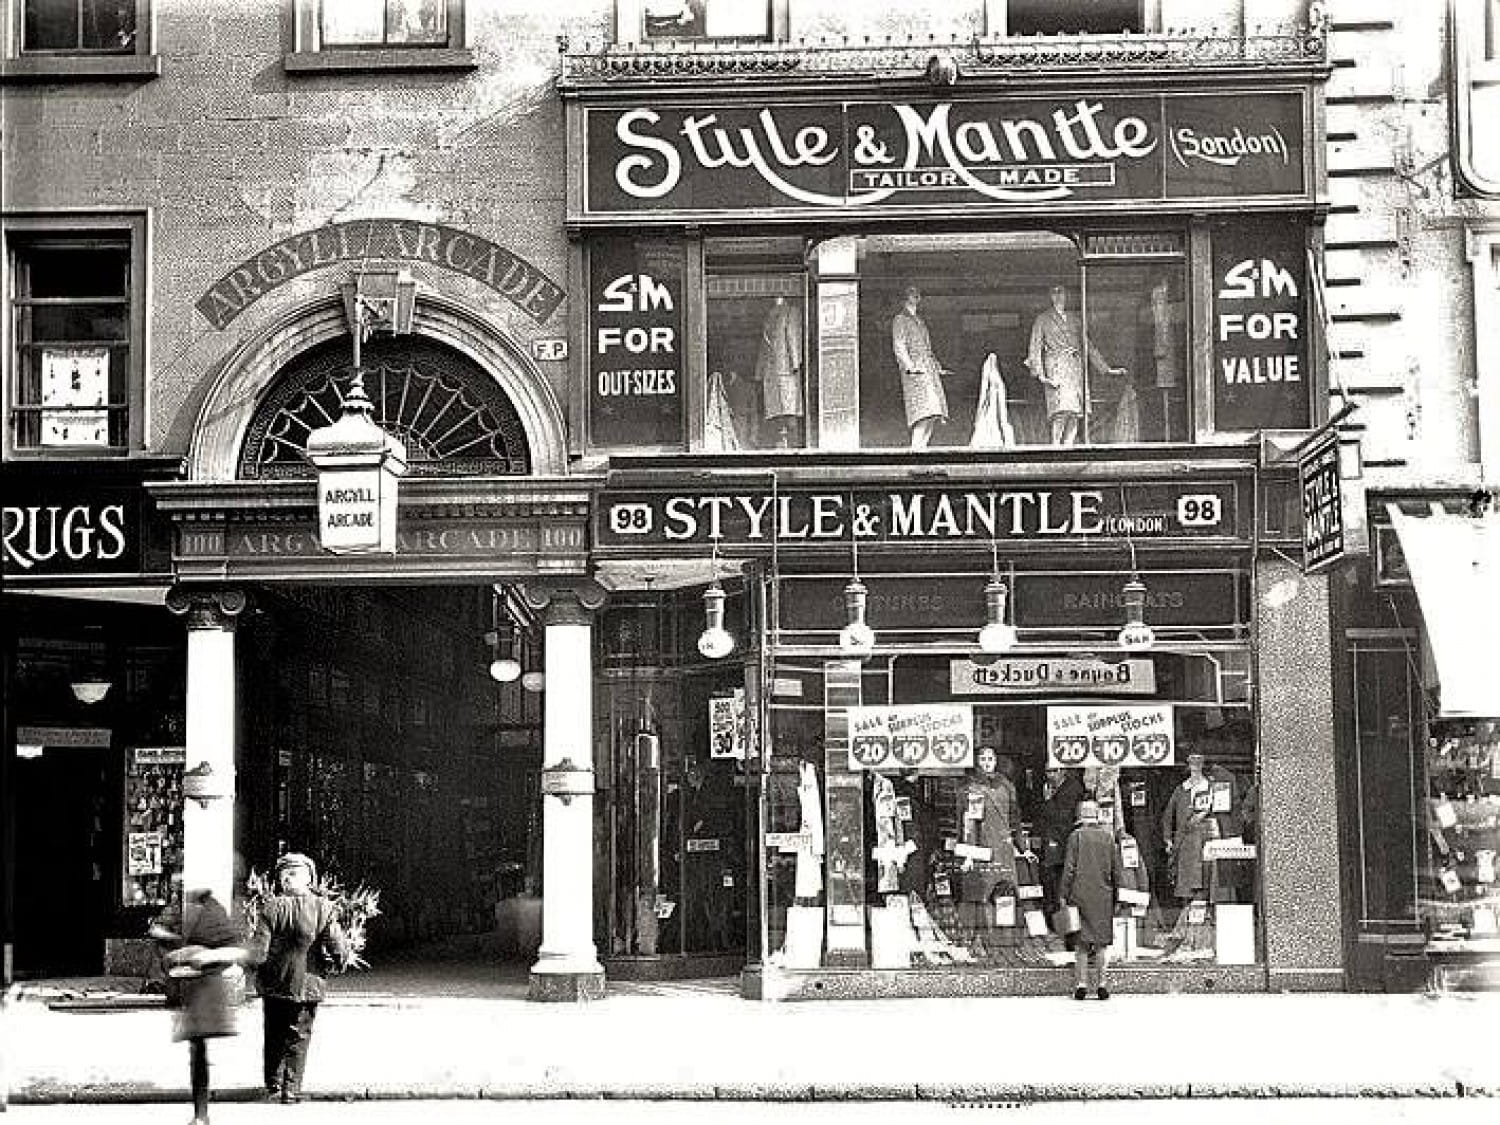 The Argyle Street entrance, in 1930.